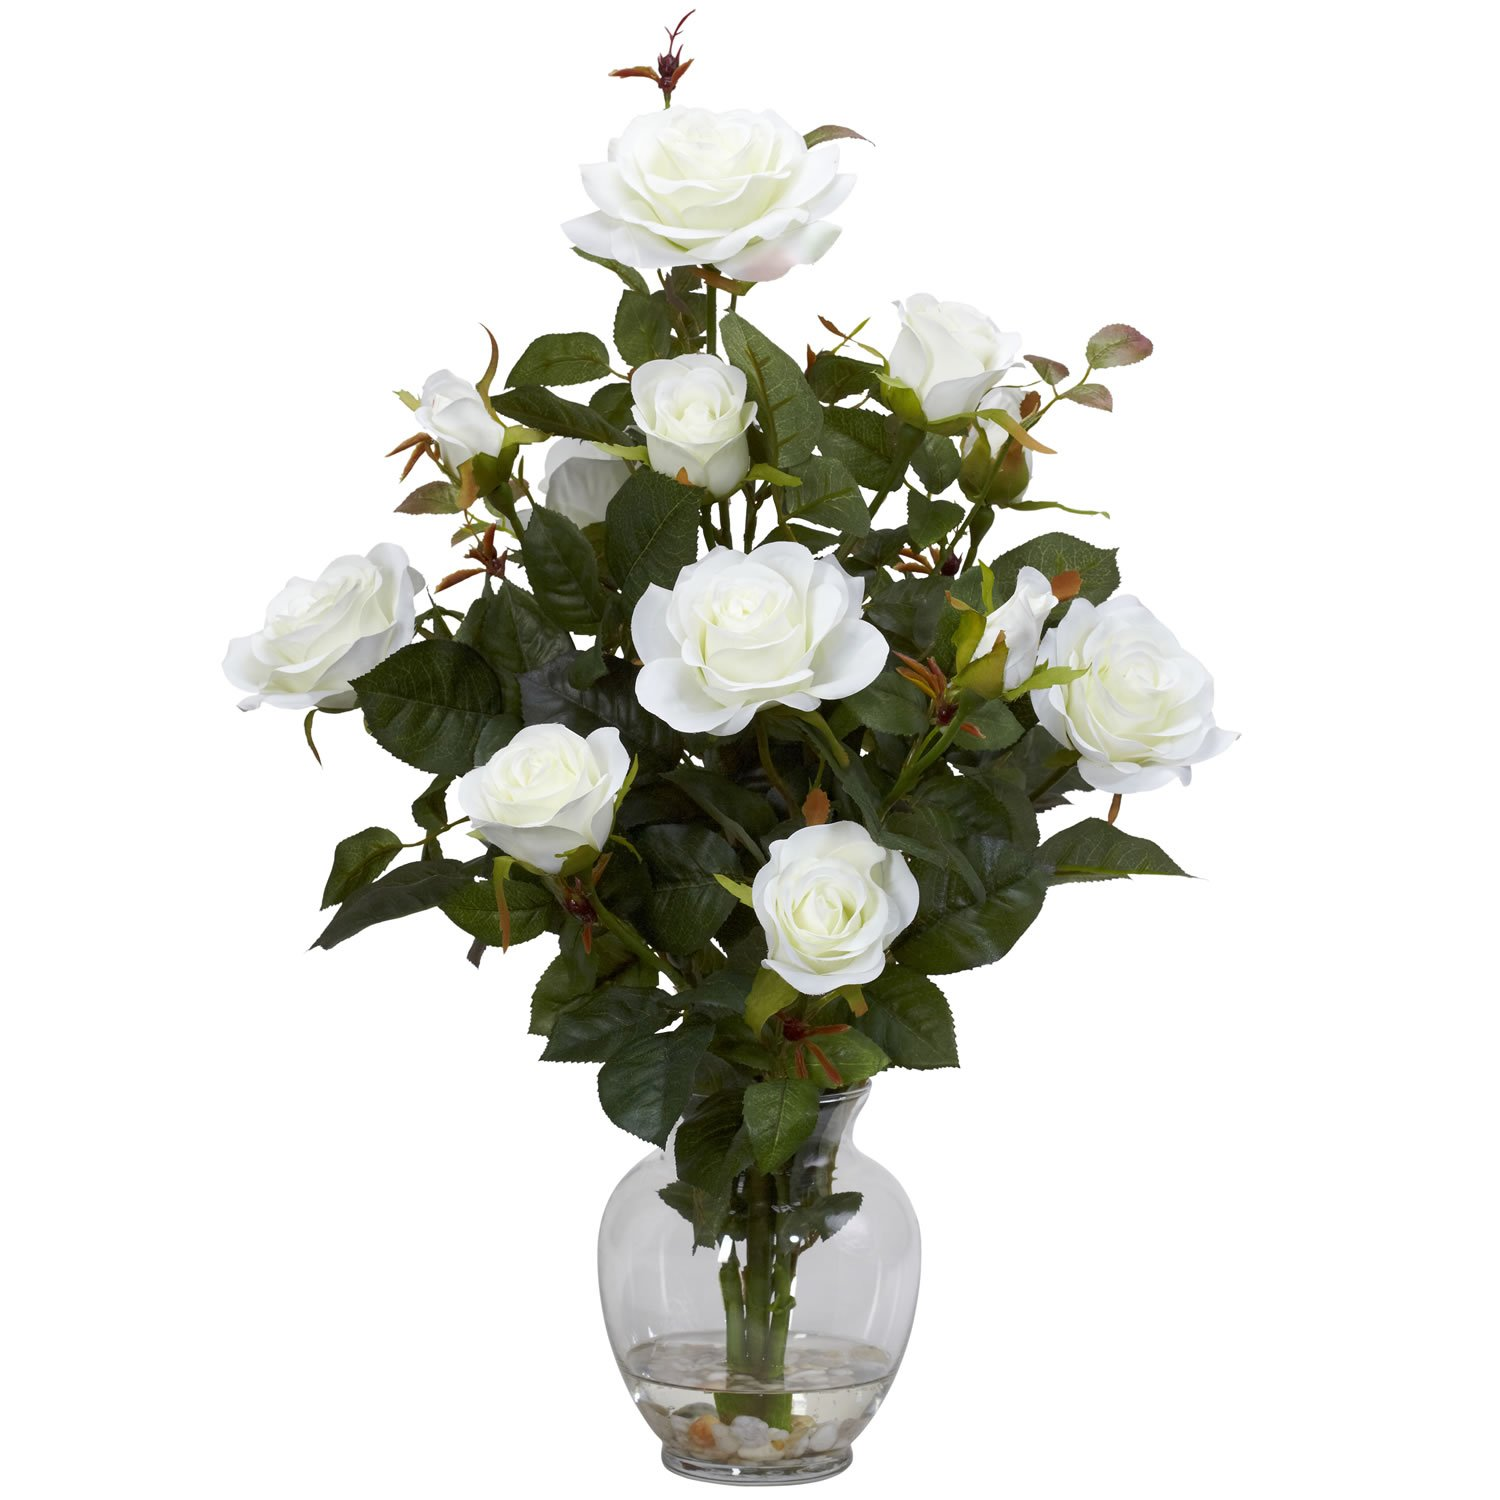 Best rated in artificial flowers helpful customer reviews amazon nearly natural 1281 wh rose bush with vase silk flower arrangement white product image mightylinksfo Image collections